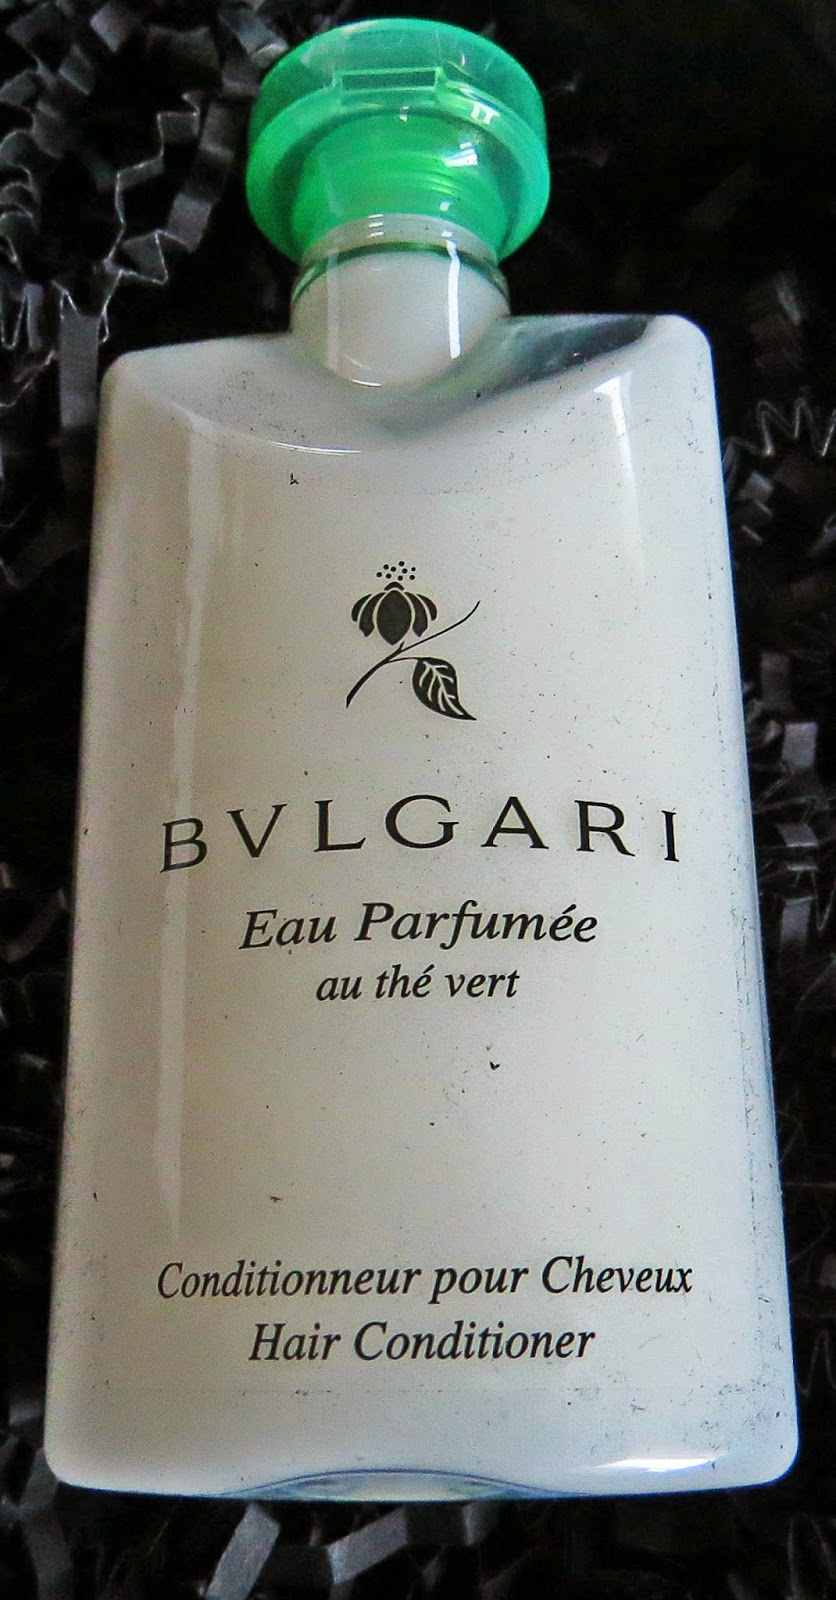 Bvlgari Parfumee Au The Vert Conditioner